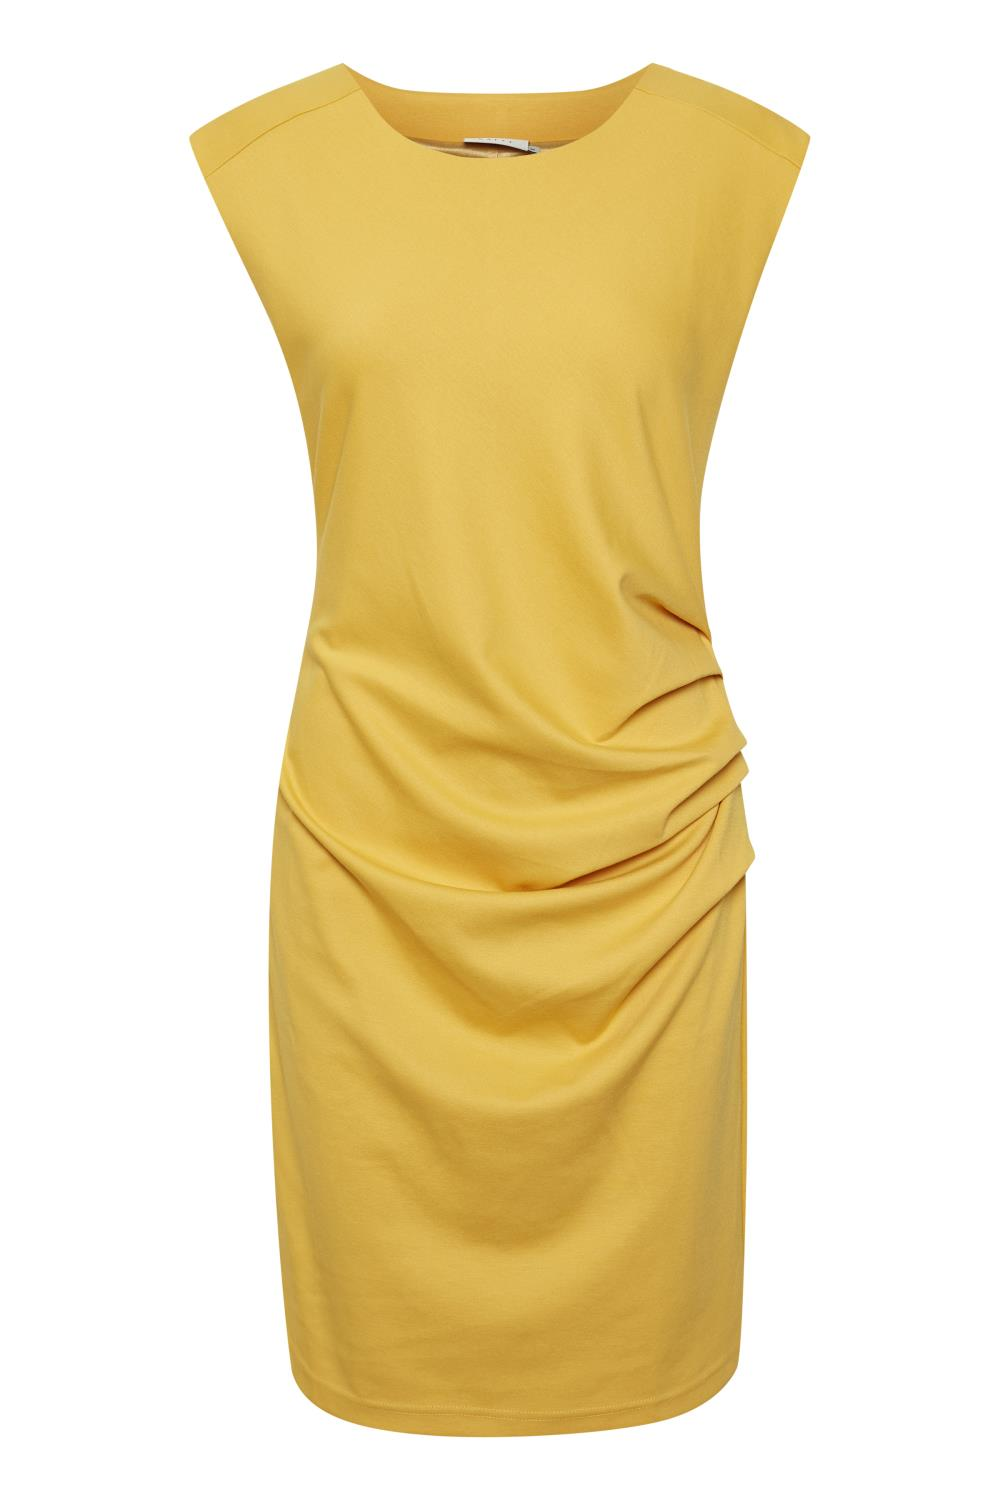 Kaffe India Round-Neck dress, golden rod